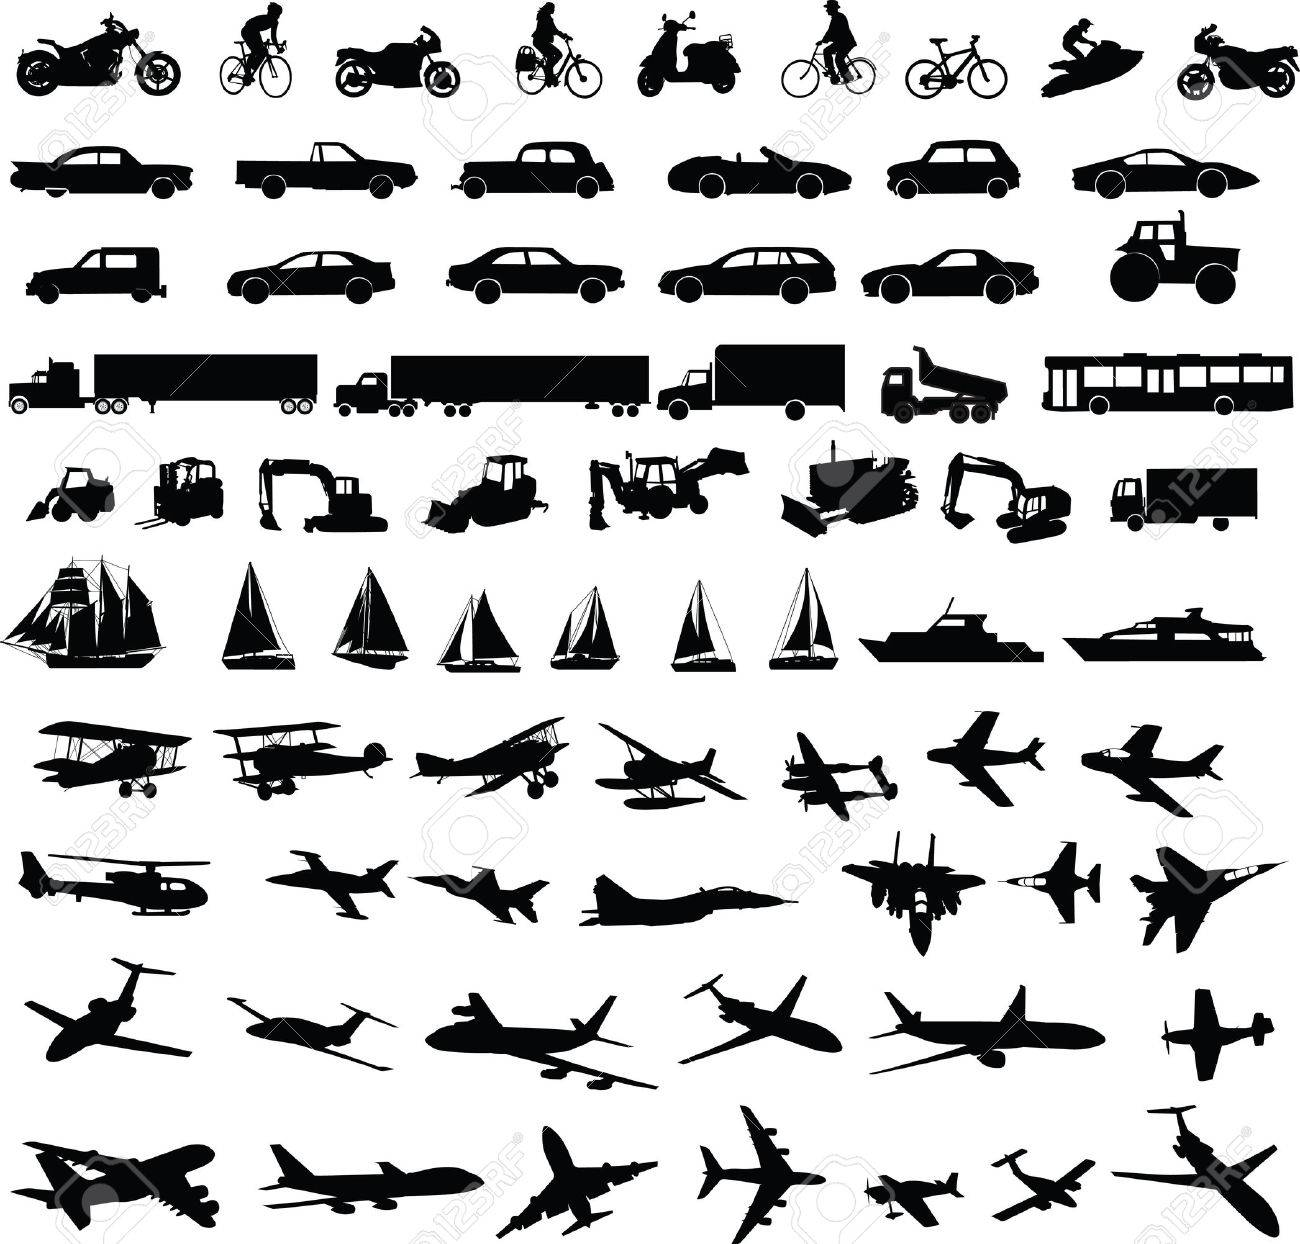 transportation silhouettes collection - vector Stock Vector - 4419883